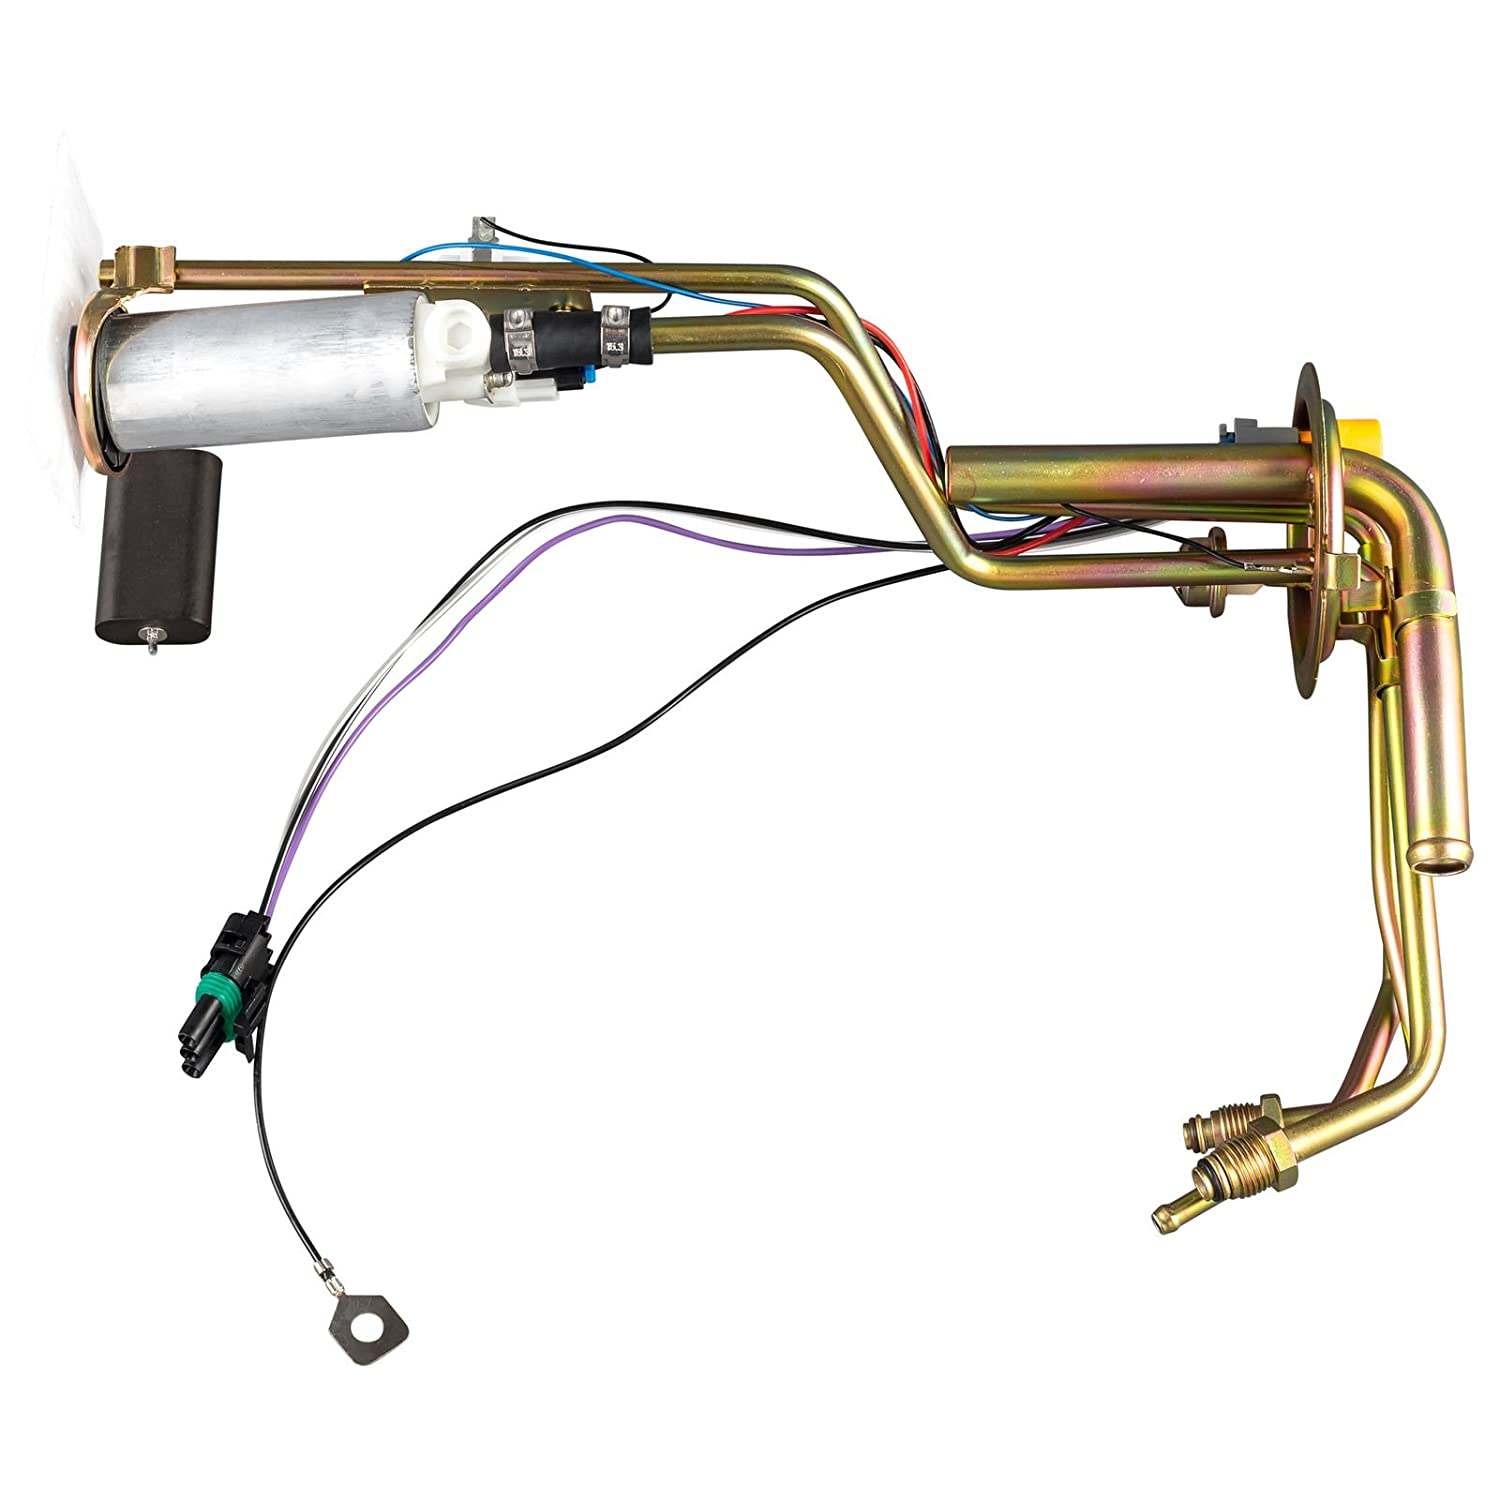 Fuel Pump Sending Unit For 88 95 C K 1500 2500 3500 96 Chevrolet Filter Location Pickup Truck Fits E3621s Automotive